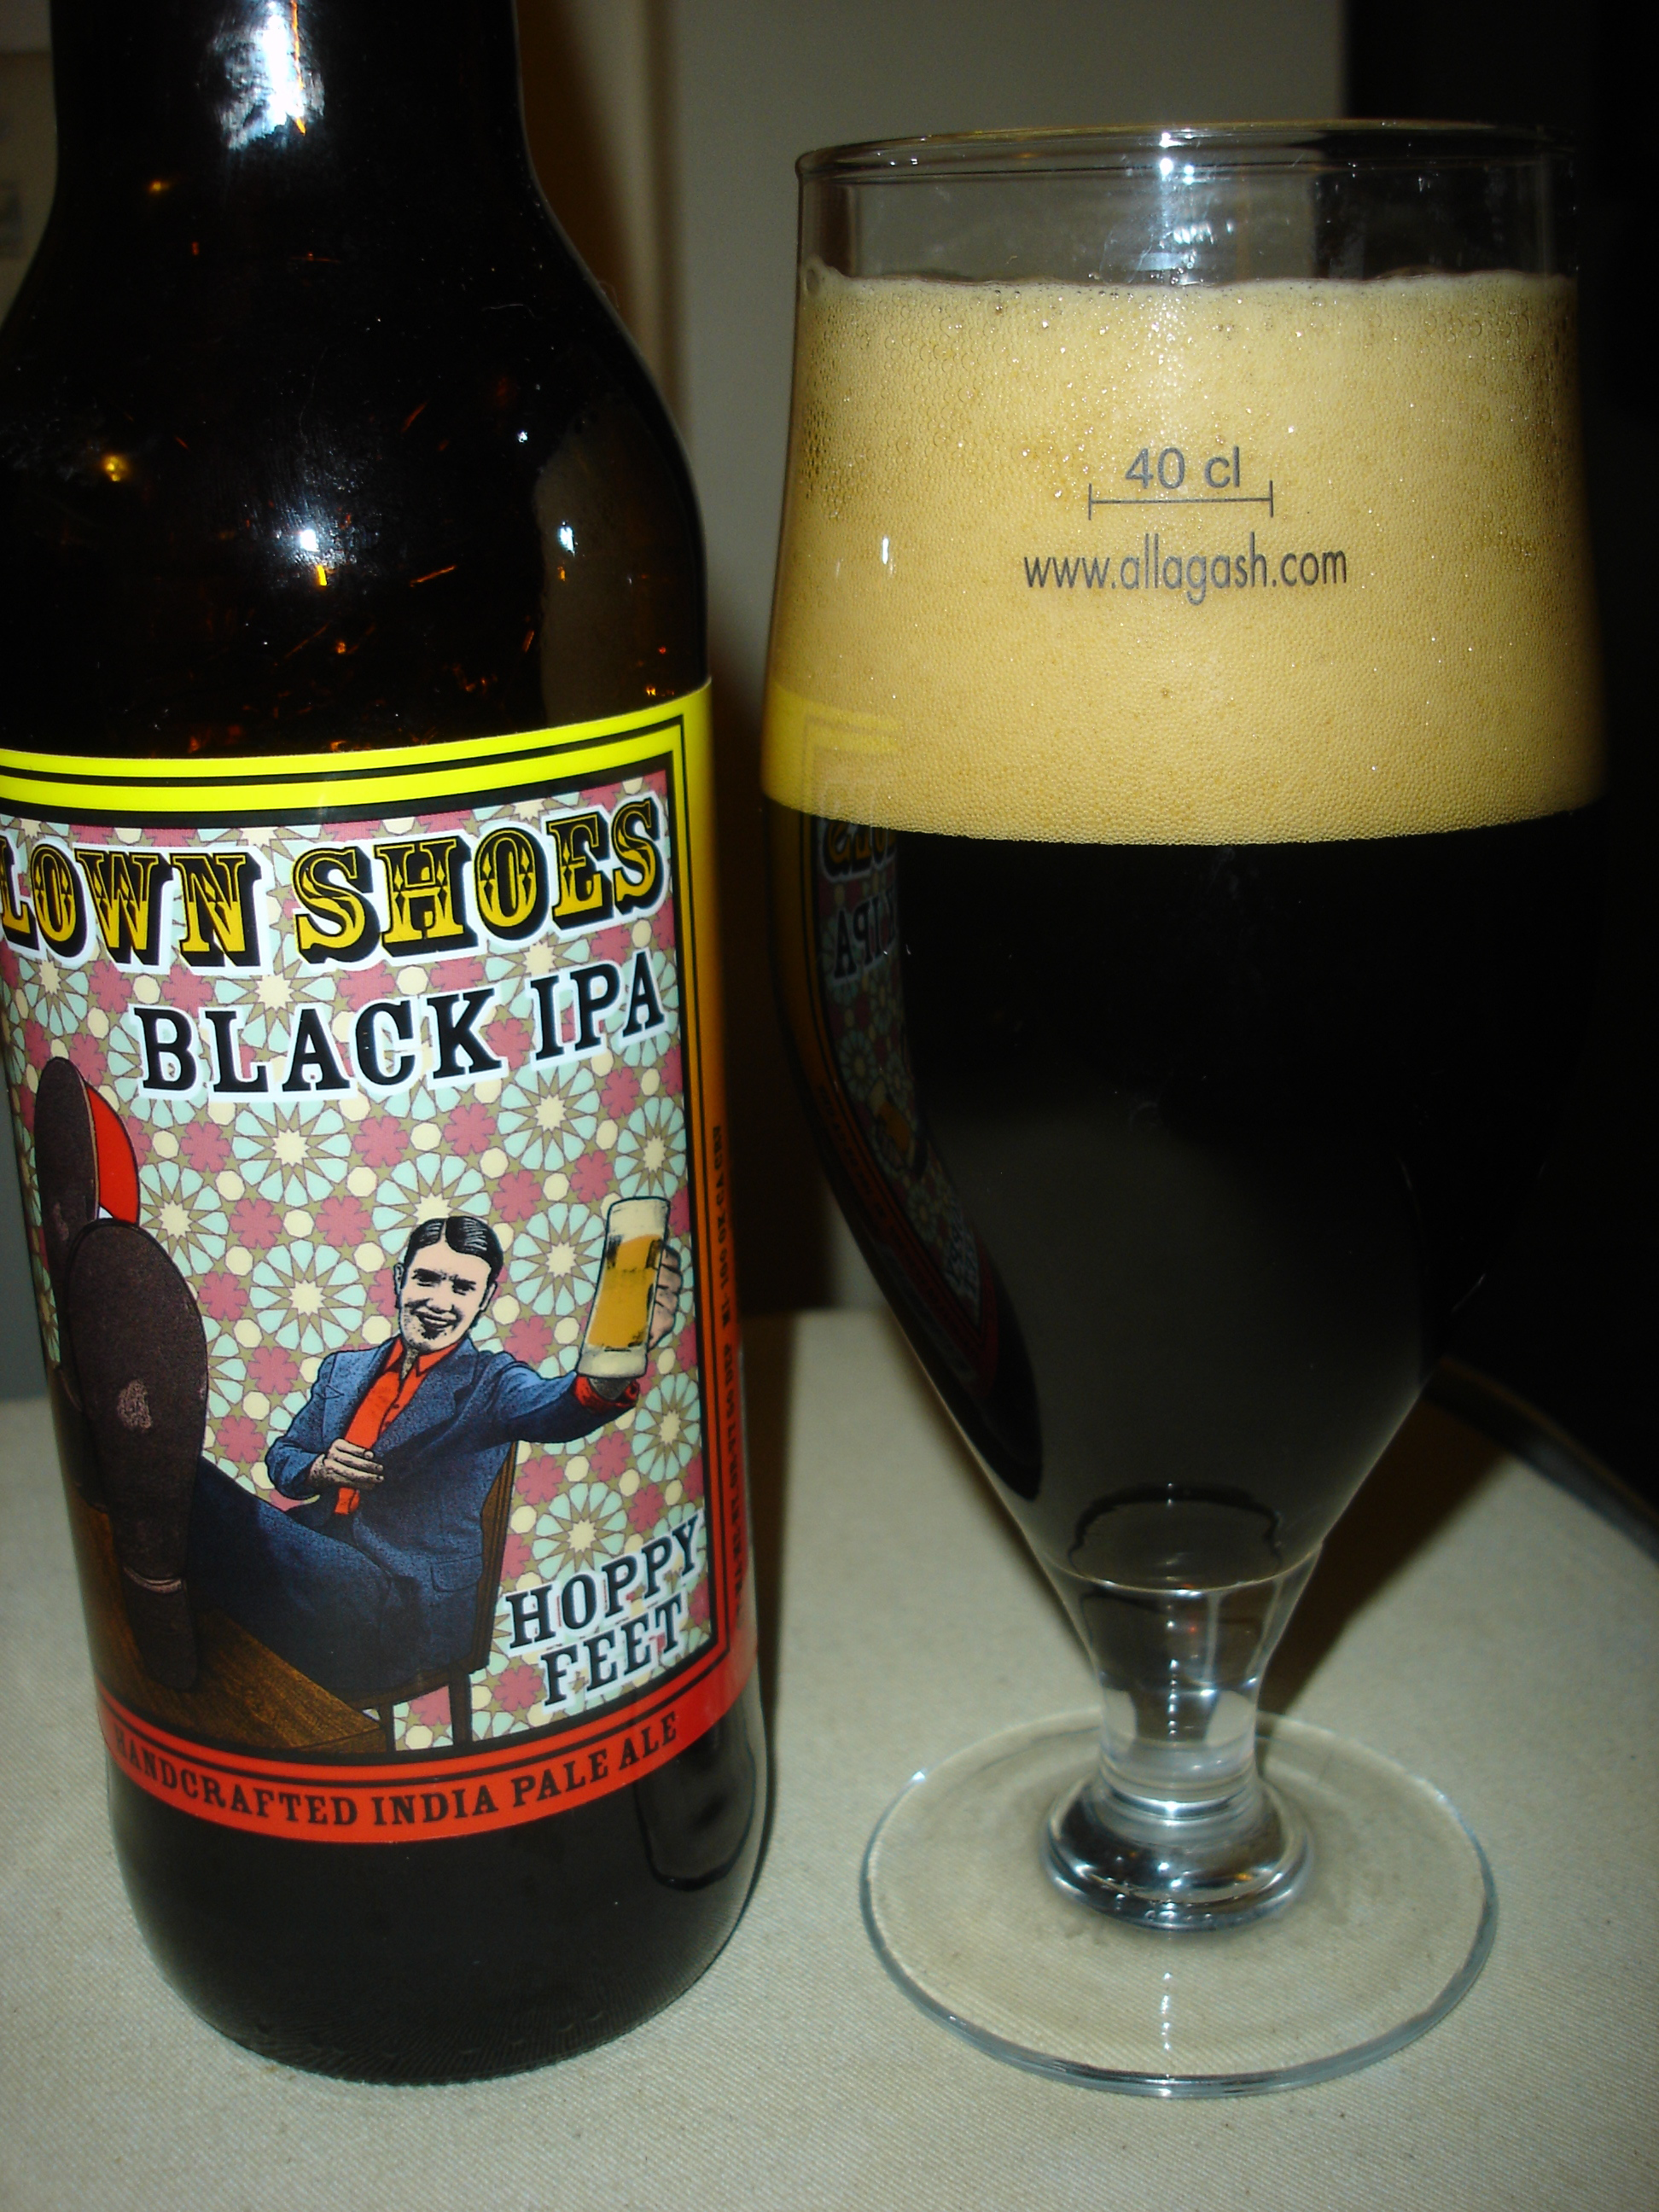 Black Clown Shoes Clown Shoes Black Ipa Hoppy